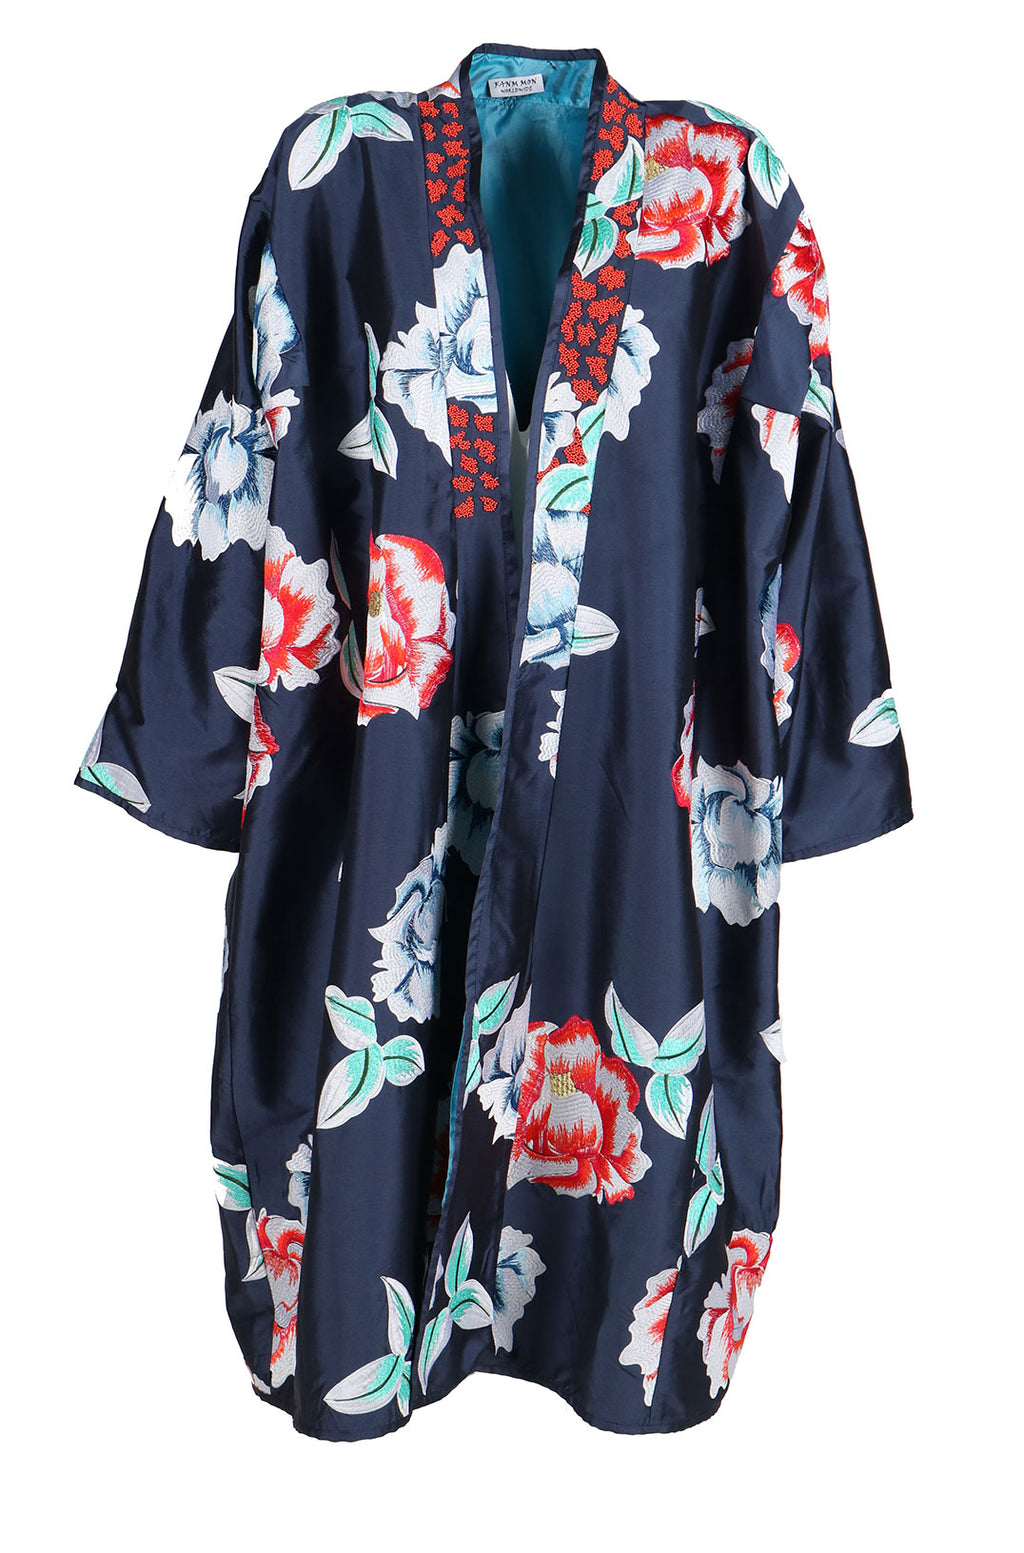 Fanm Mon SOPHIA Vyshyvanka Navy Silk Jacket Floral Embroidered Beaded Kimono Jacket